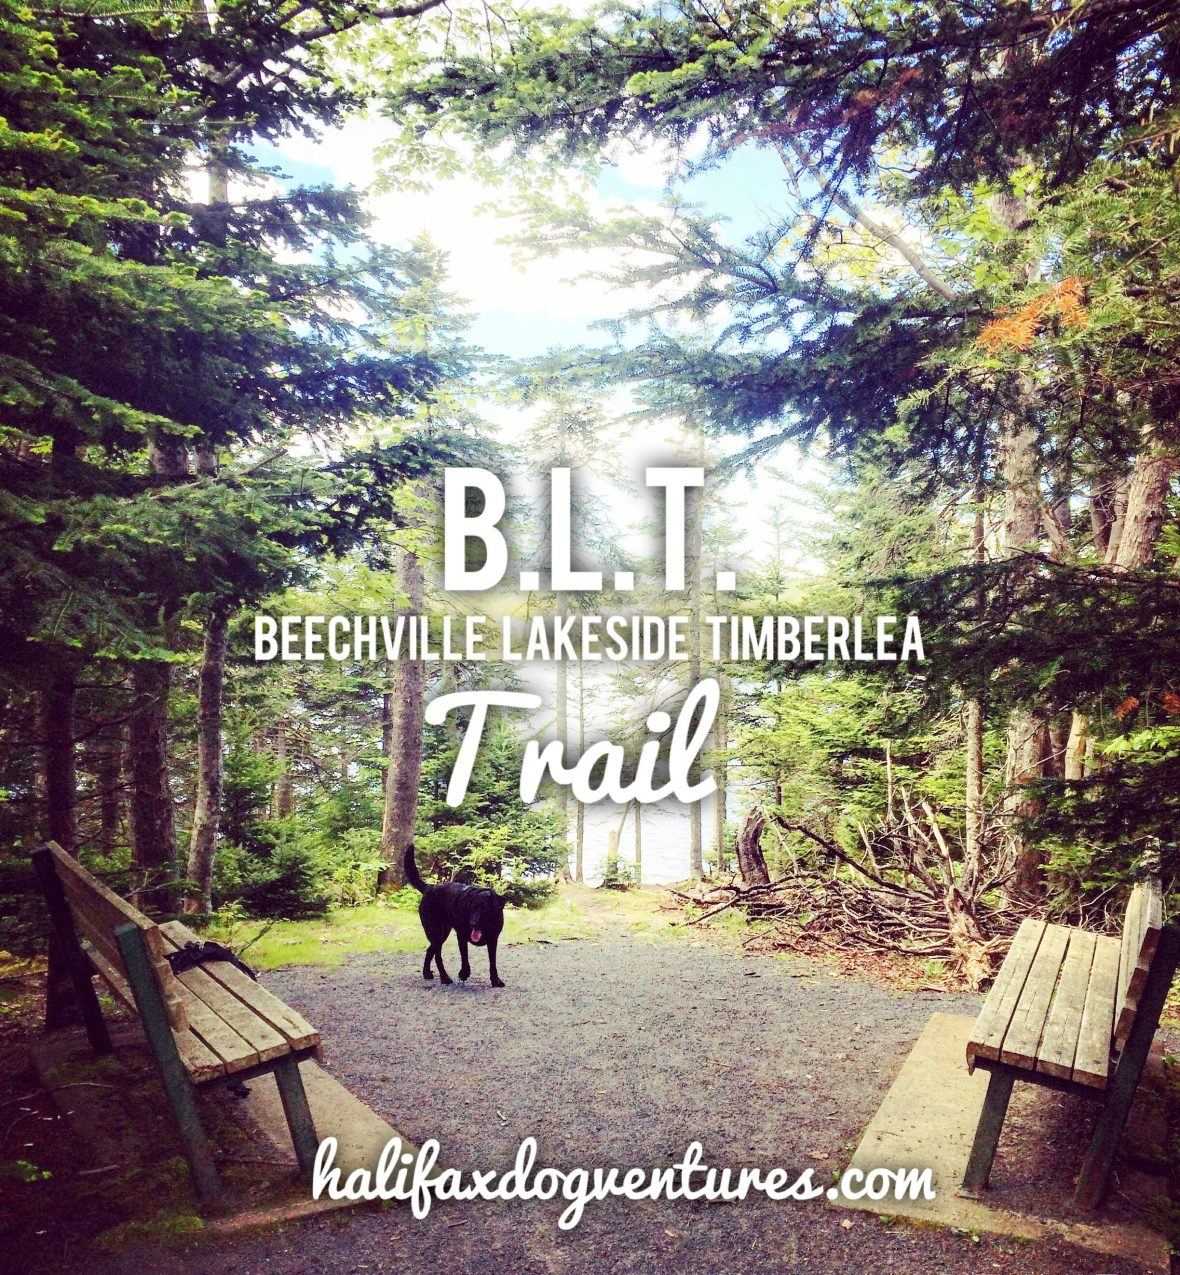 Beechville Lakeside Timberlea BLT Trail is dog-friendly! Its a great place to go jogging with your dog